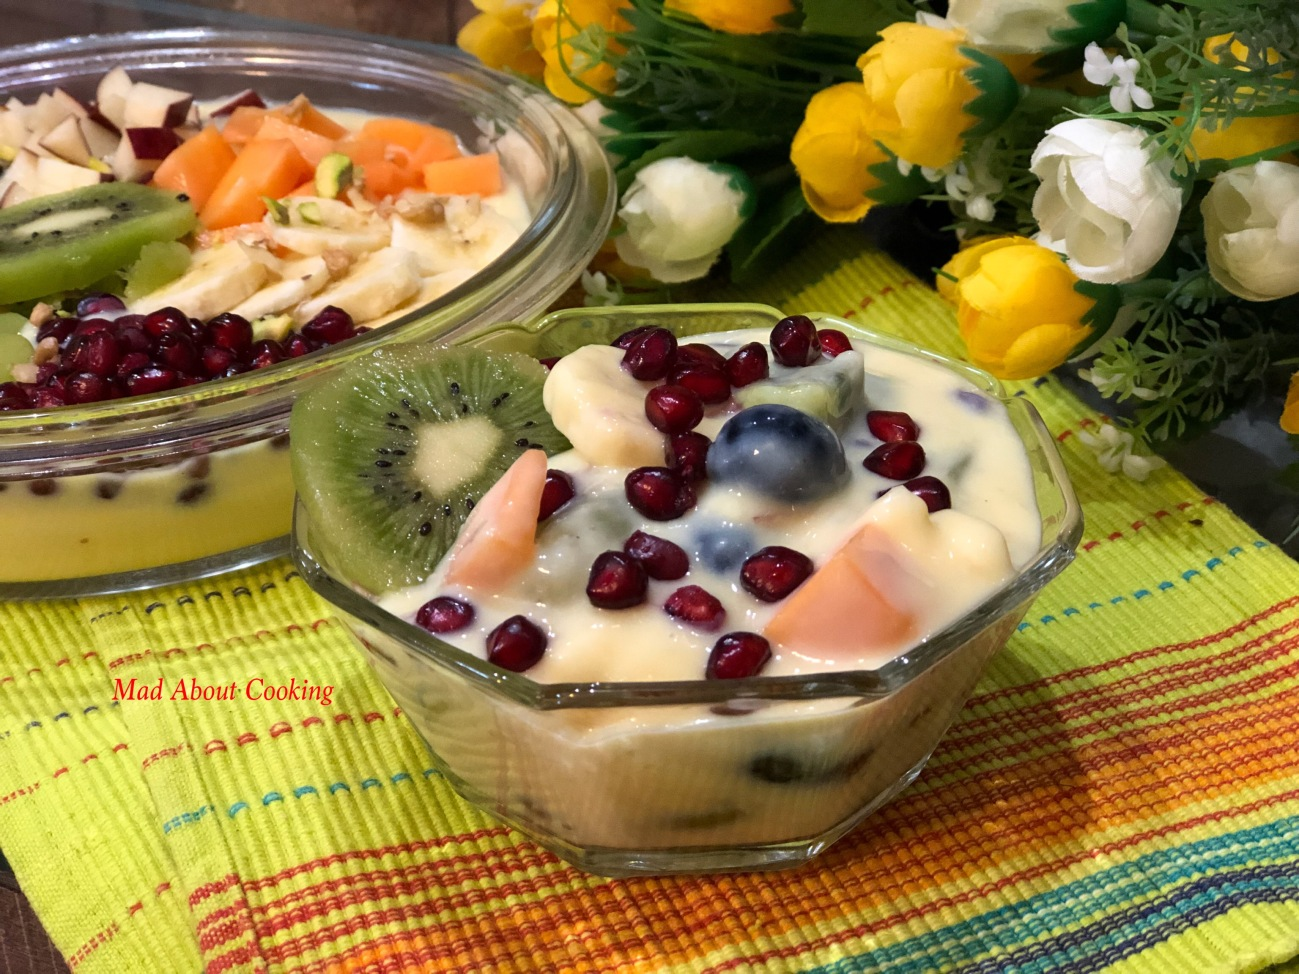 Mixed Fruit Custard My Favorite Dessert Mad About Cooking